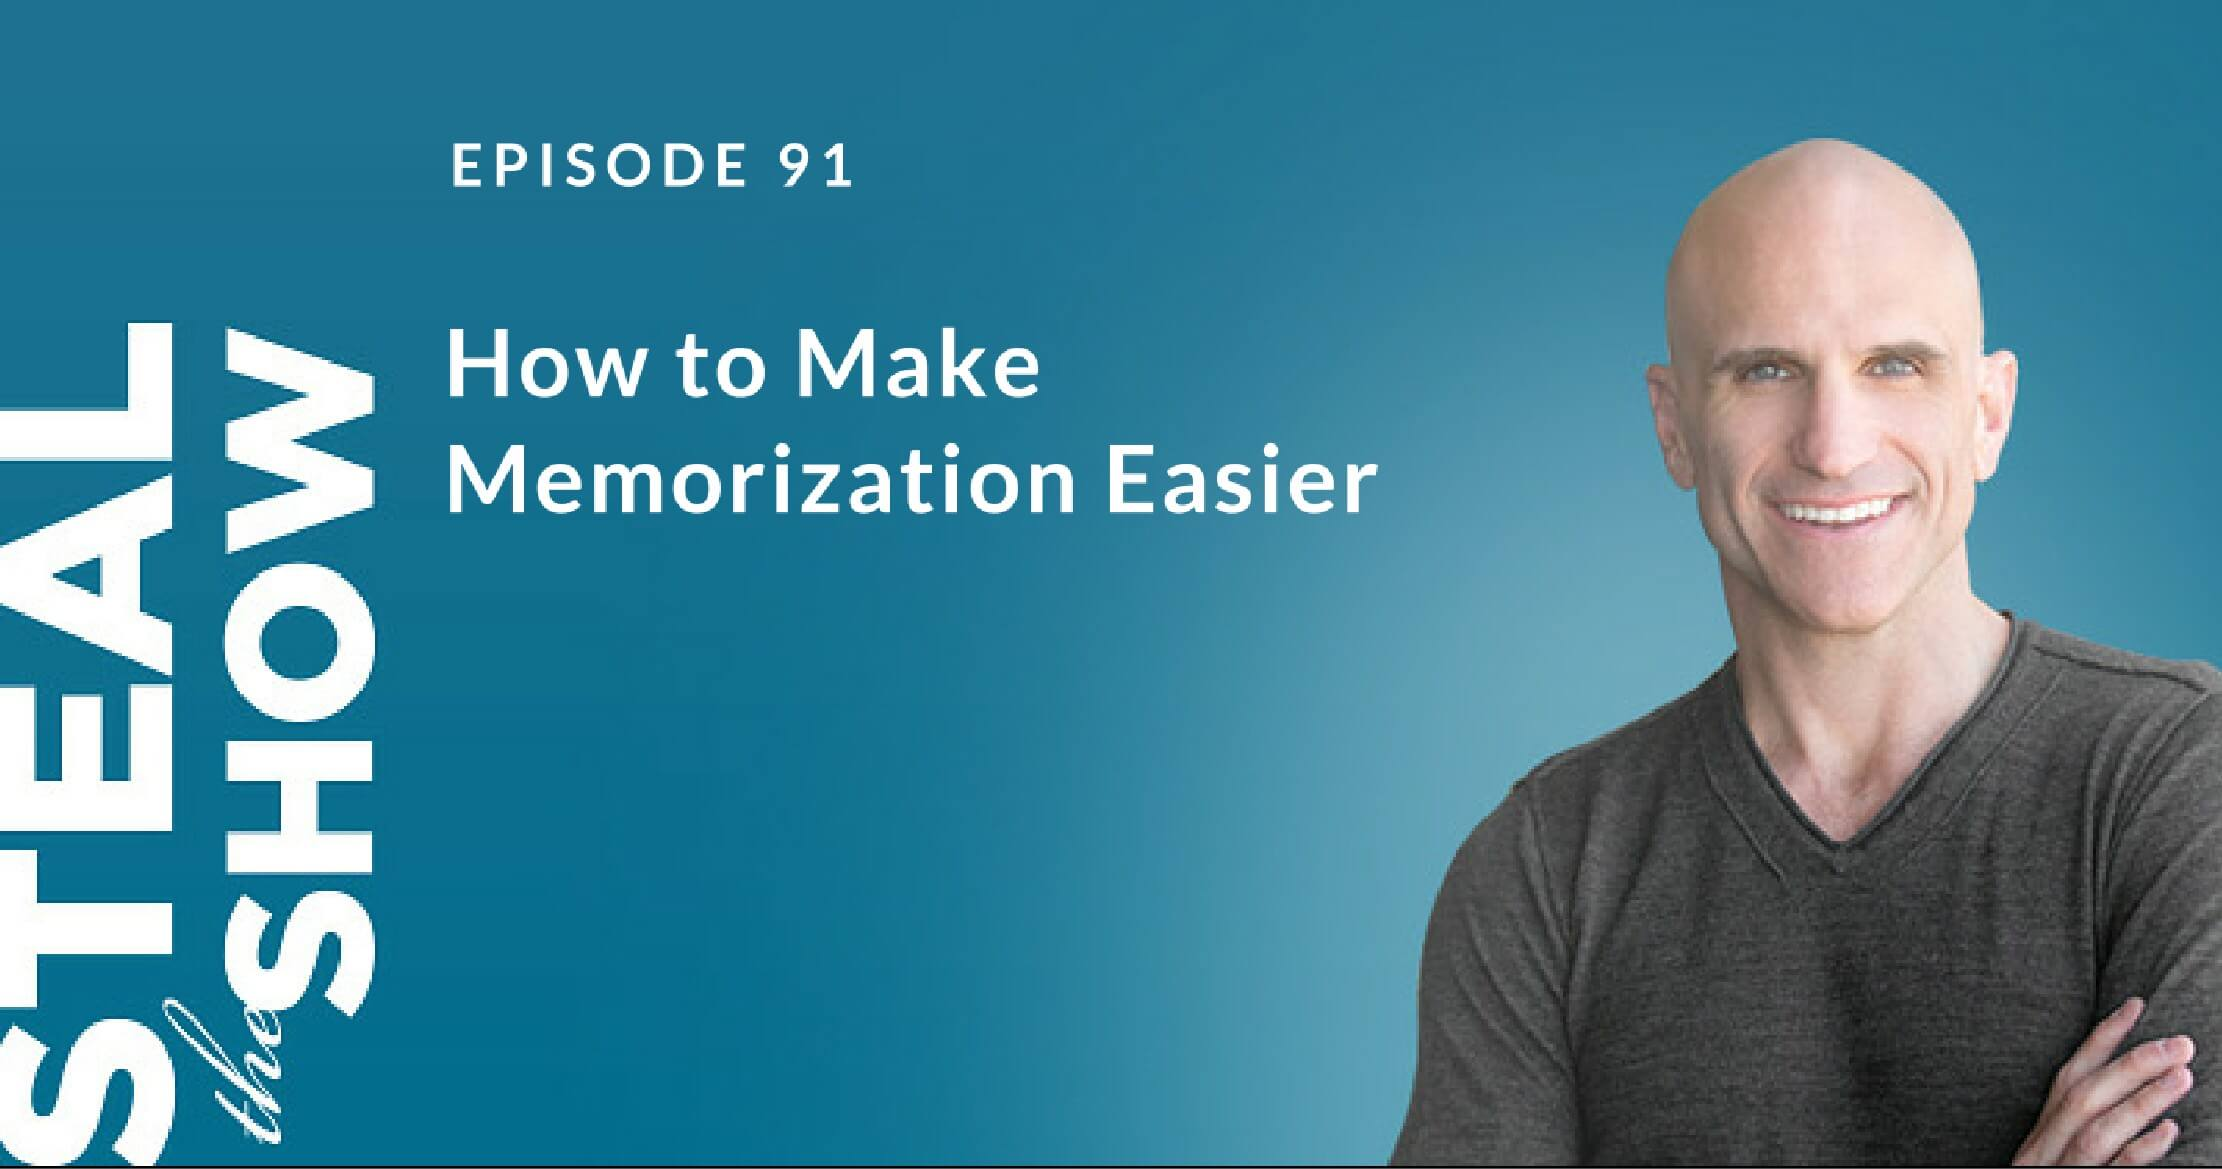 091 How to Make Memorization Easier